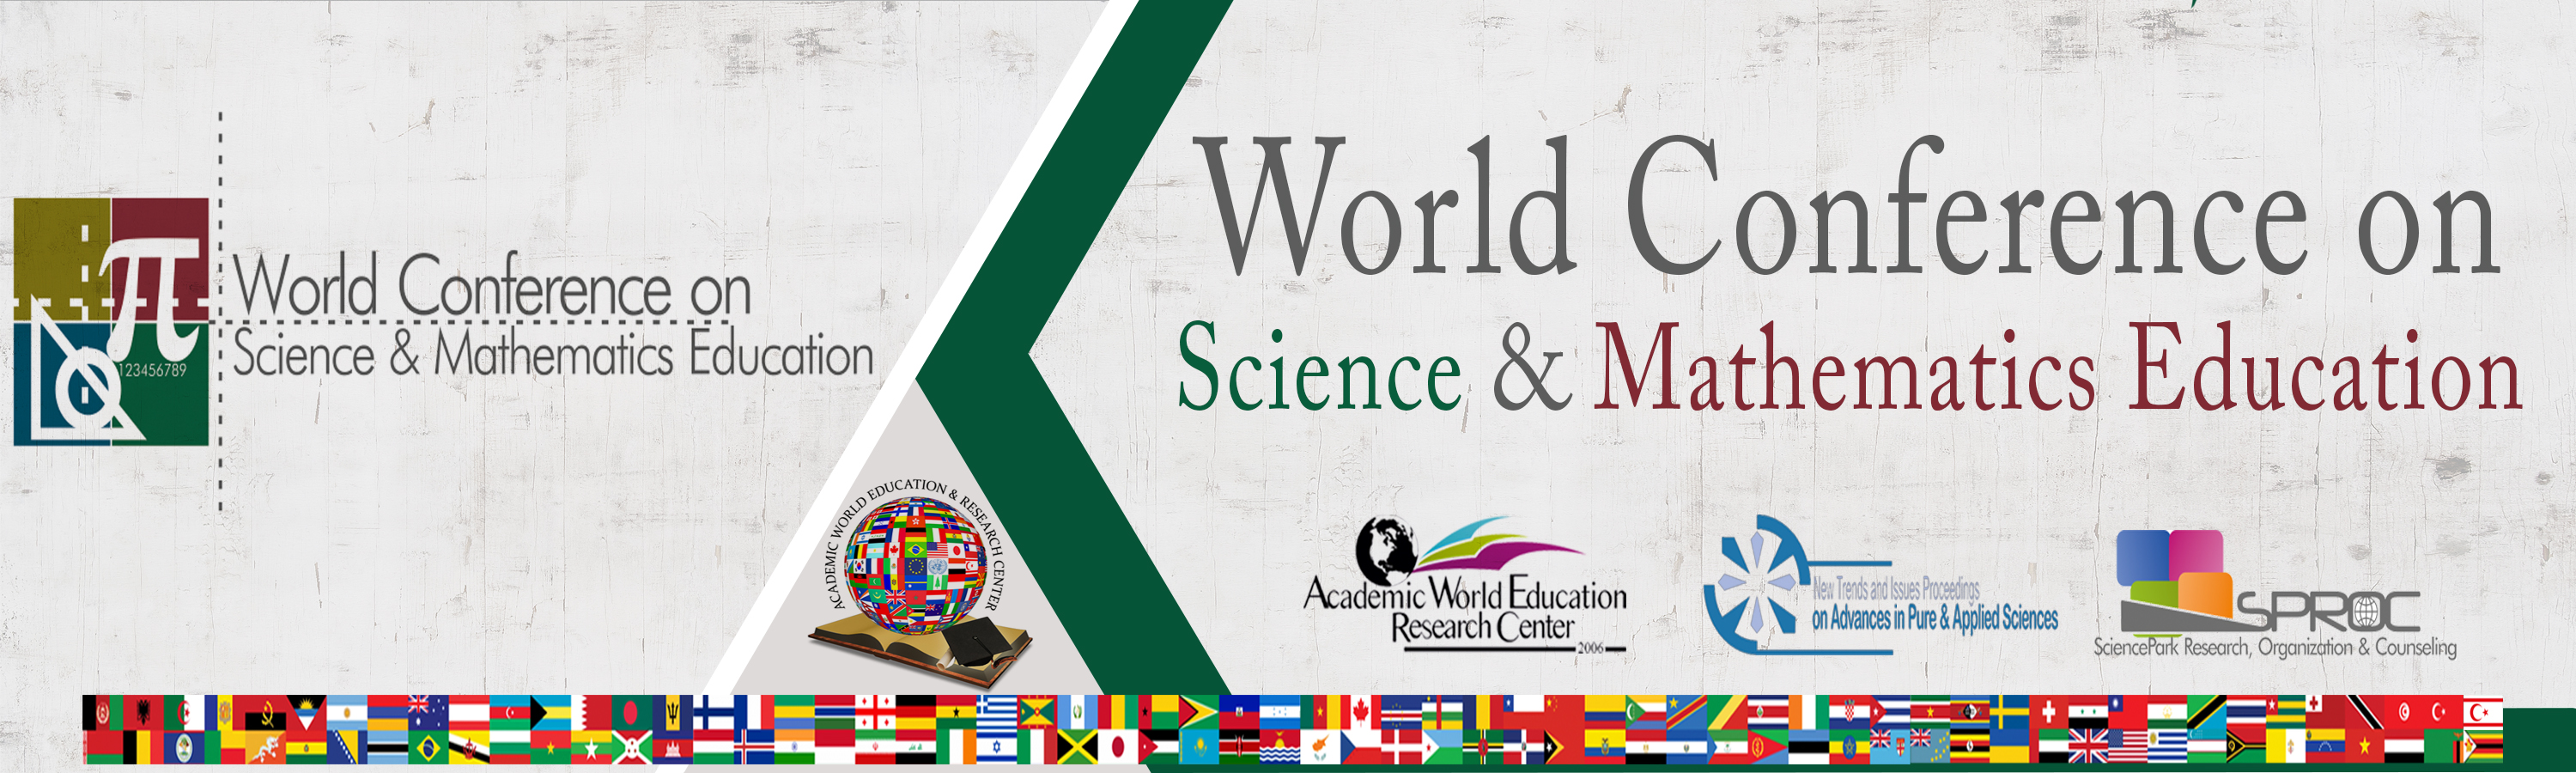 World conference on Science and Mathematics Education